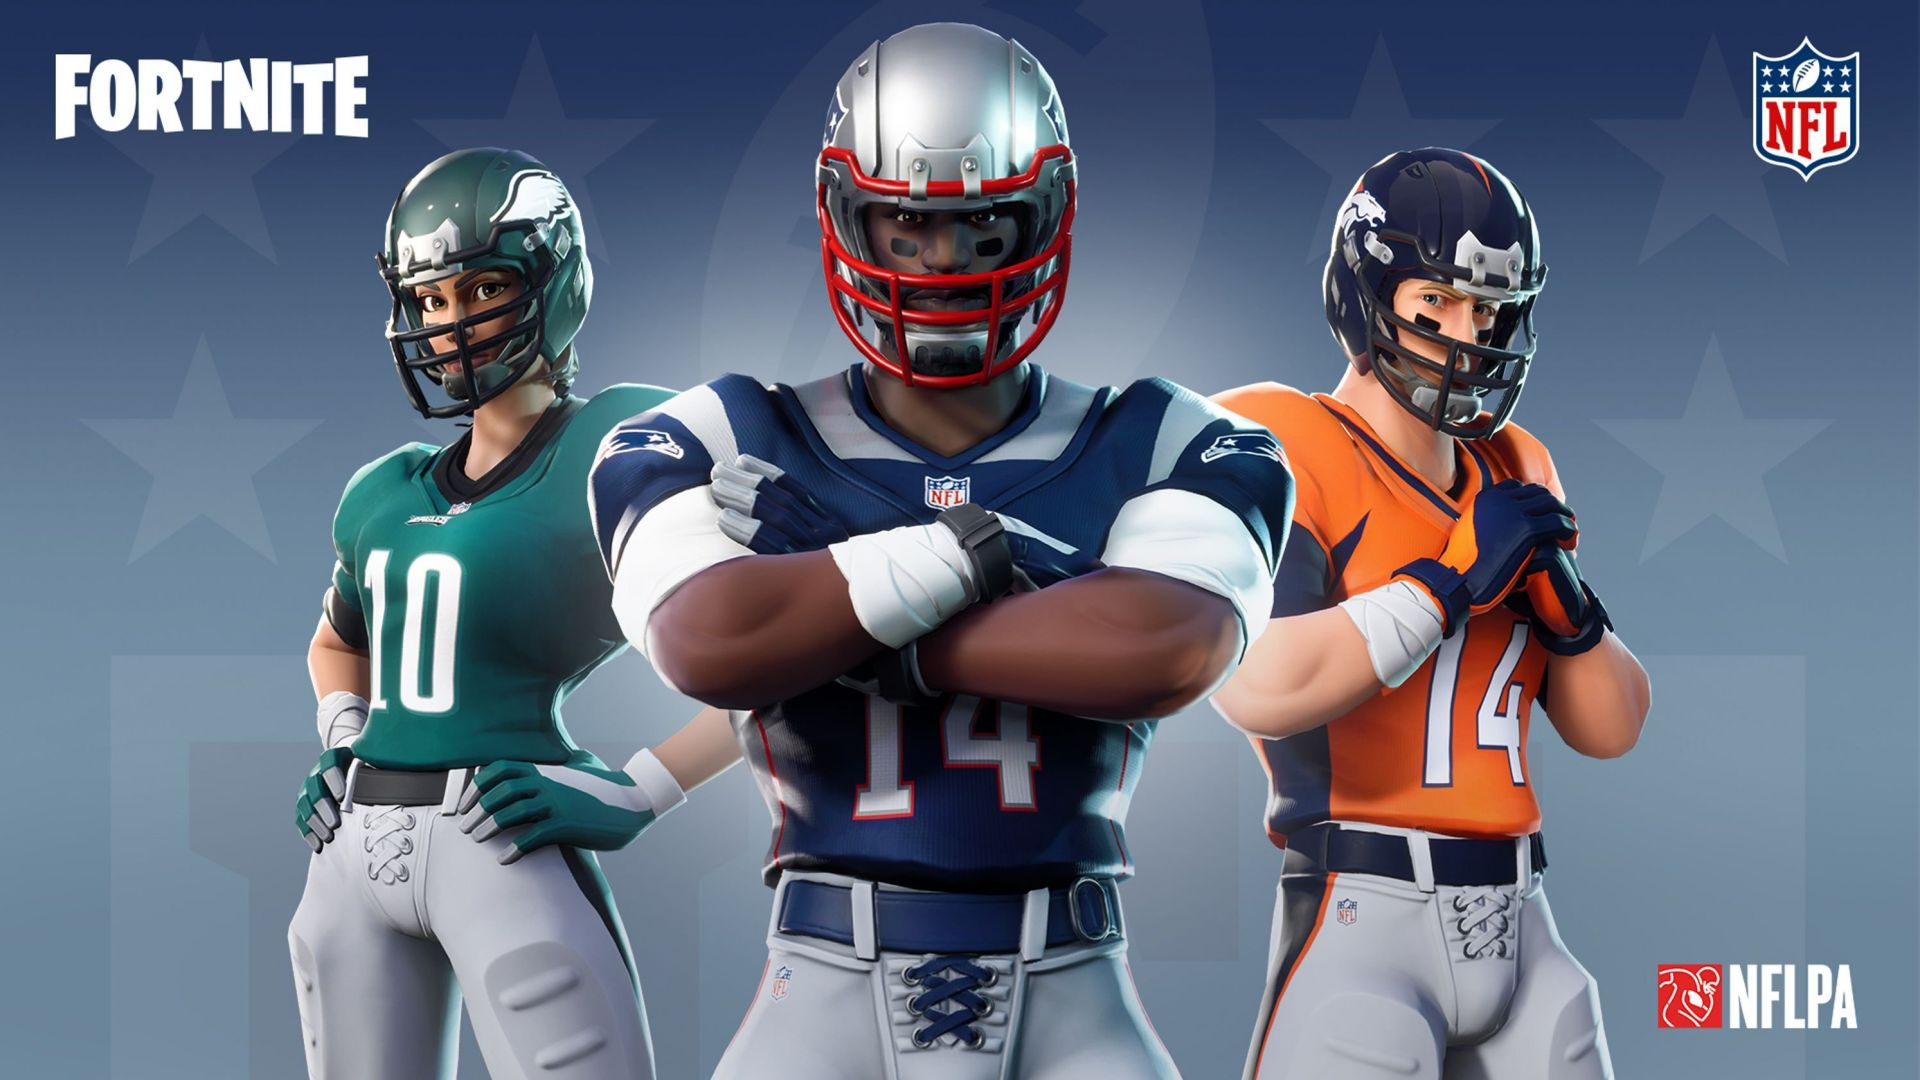 Fortnite NFL outfits, screenshot, 4K (horizontal)